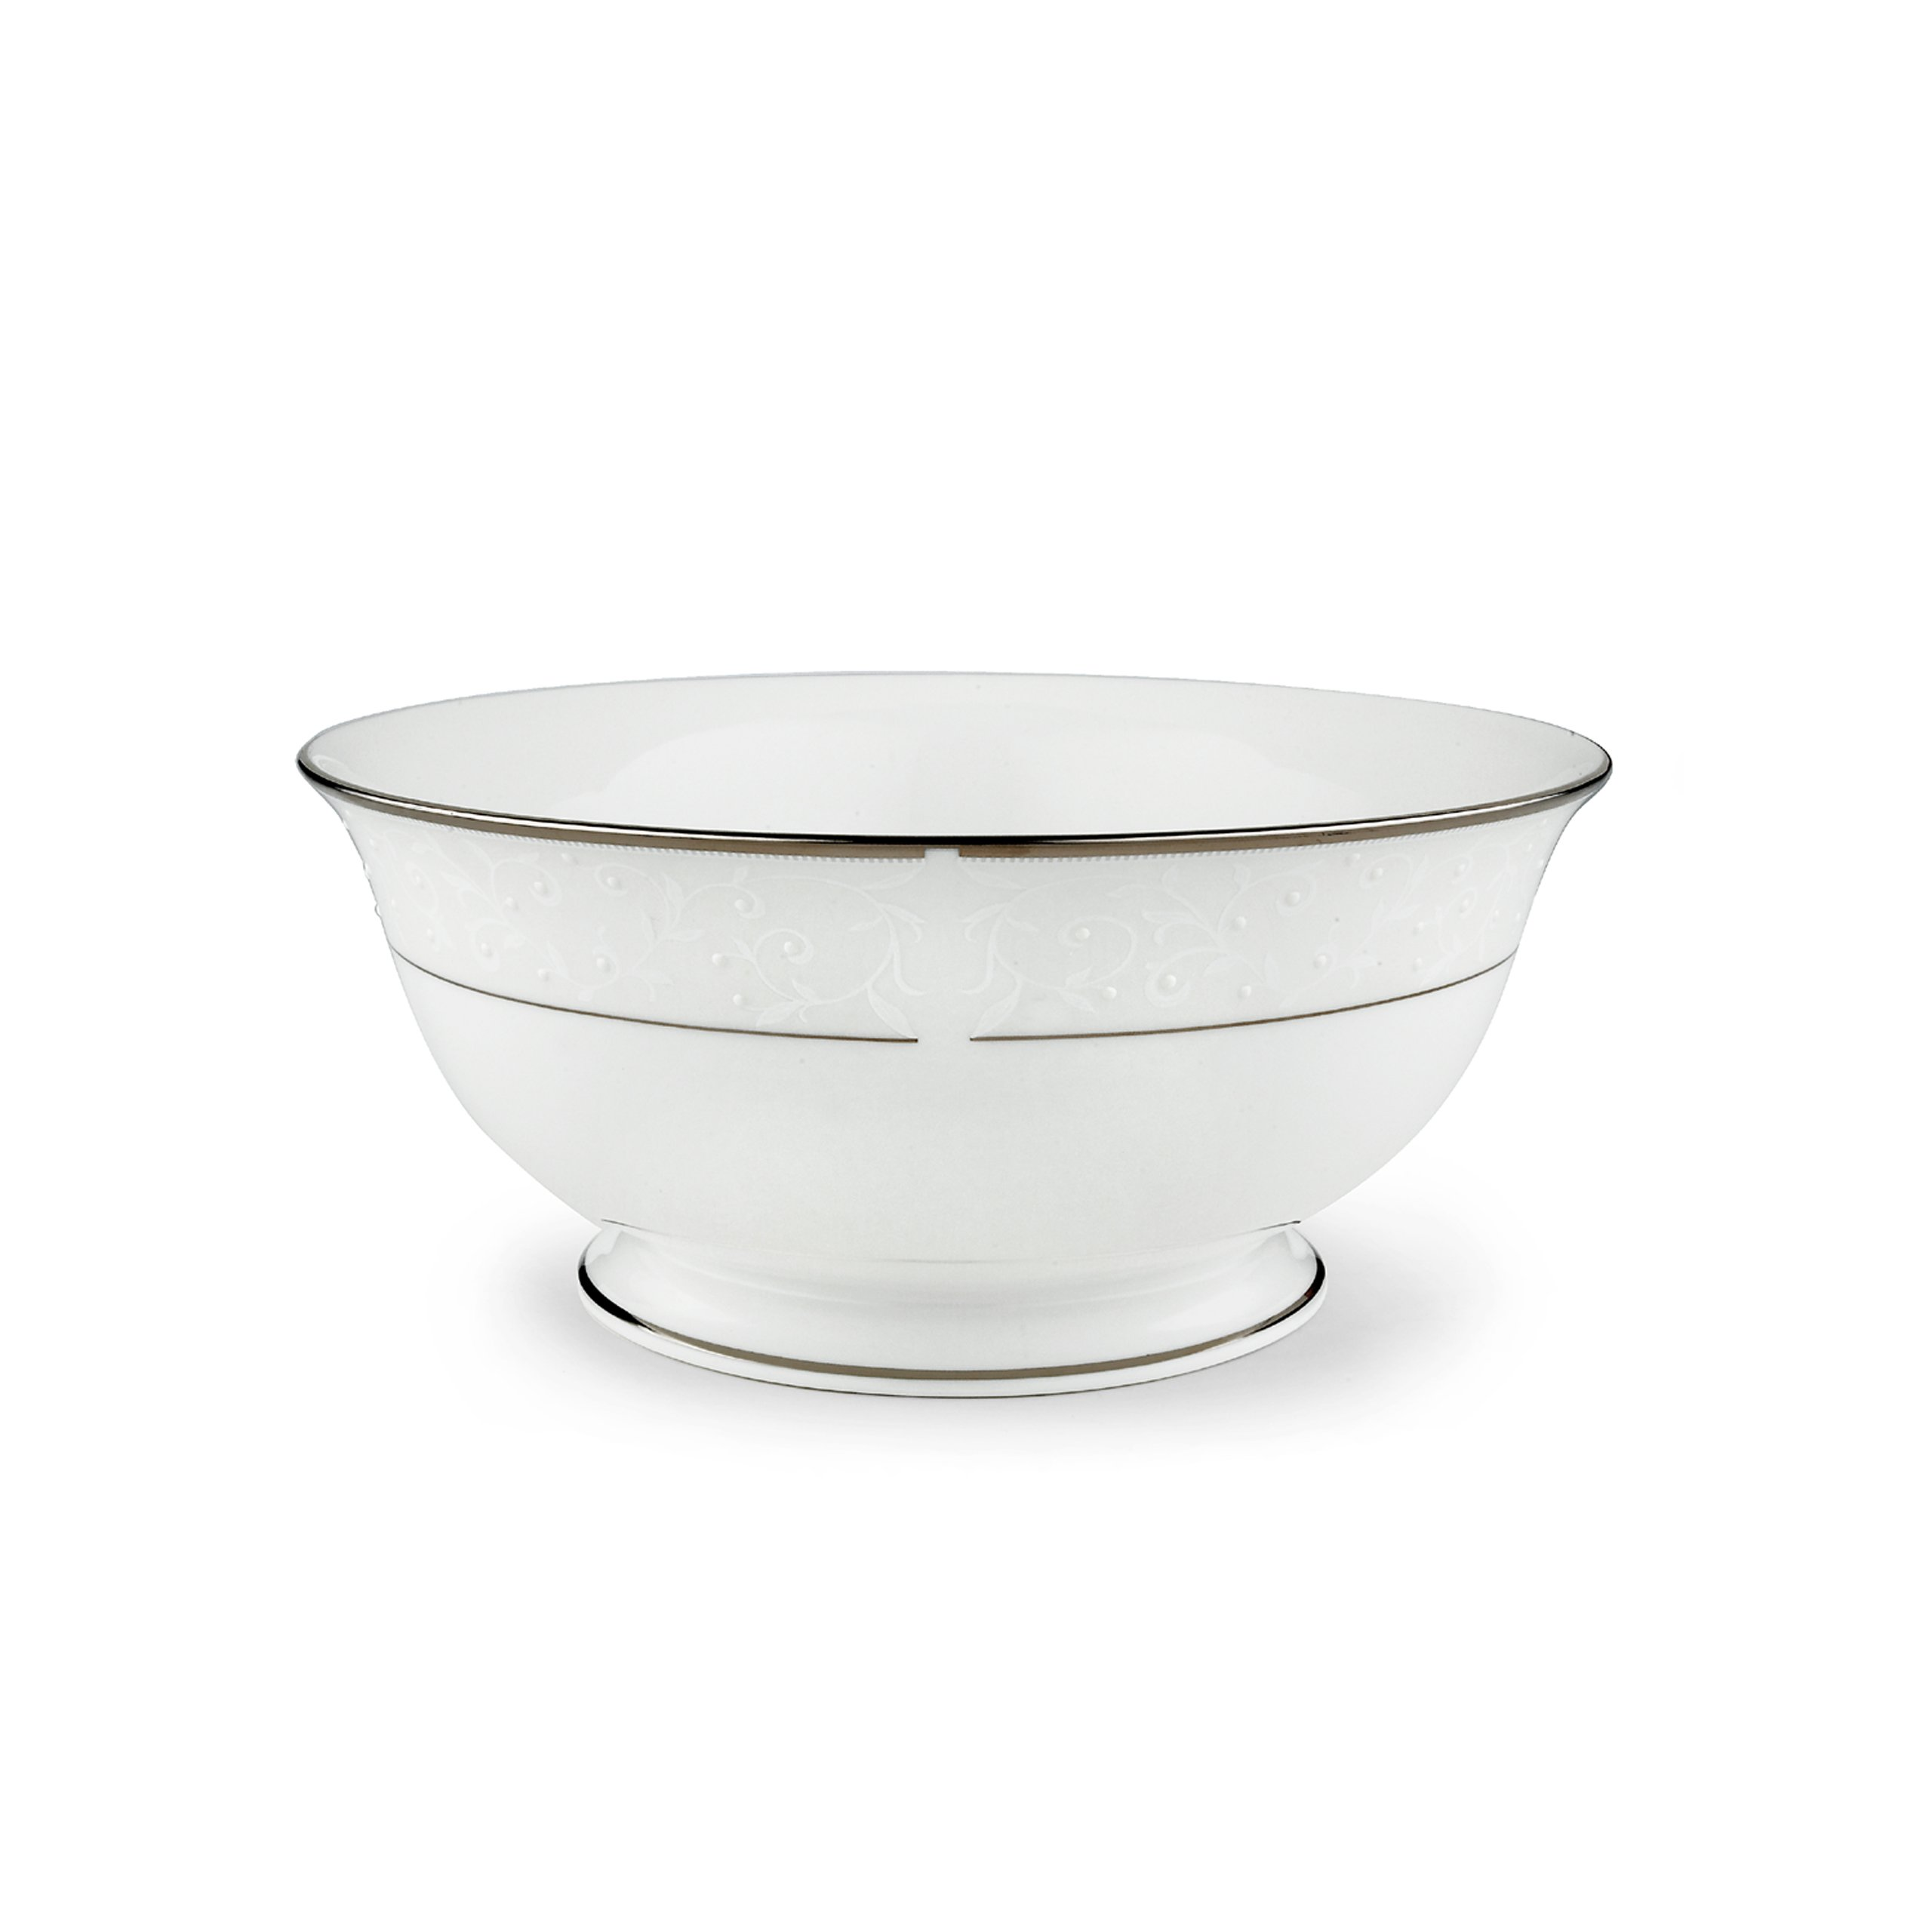 Lenox 6252423 Opal Innocence Large Serving Bowl, White